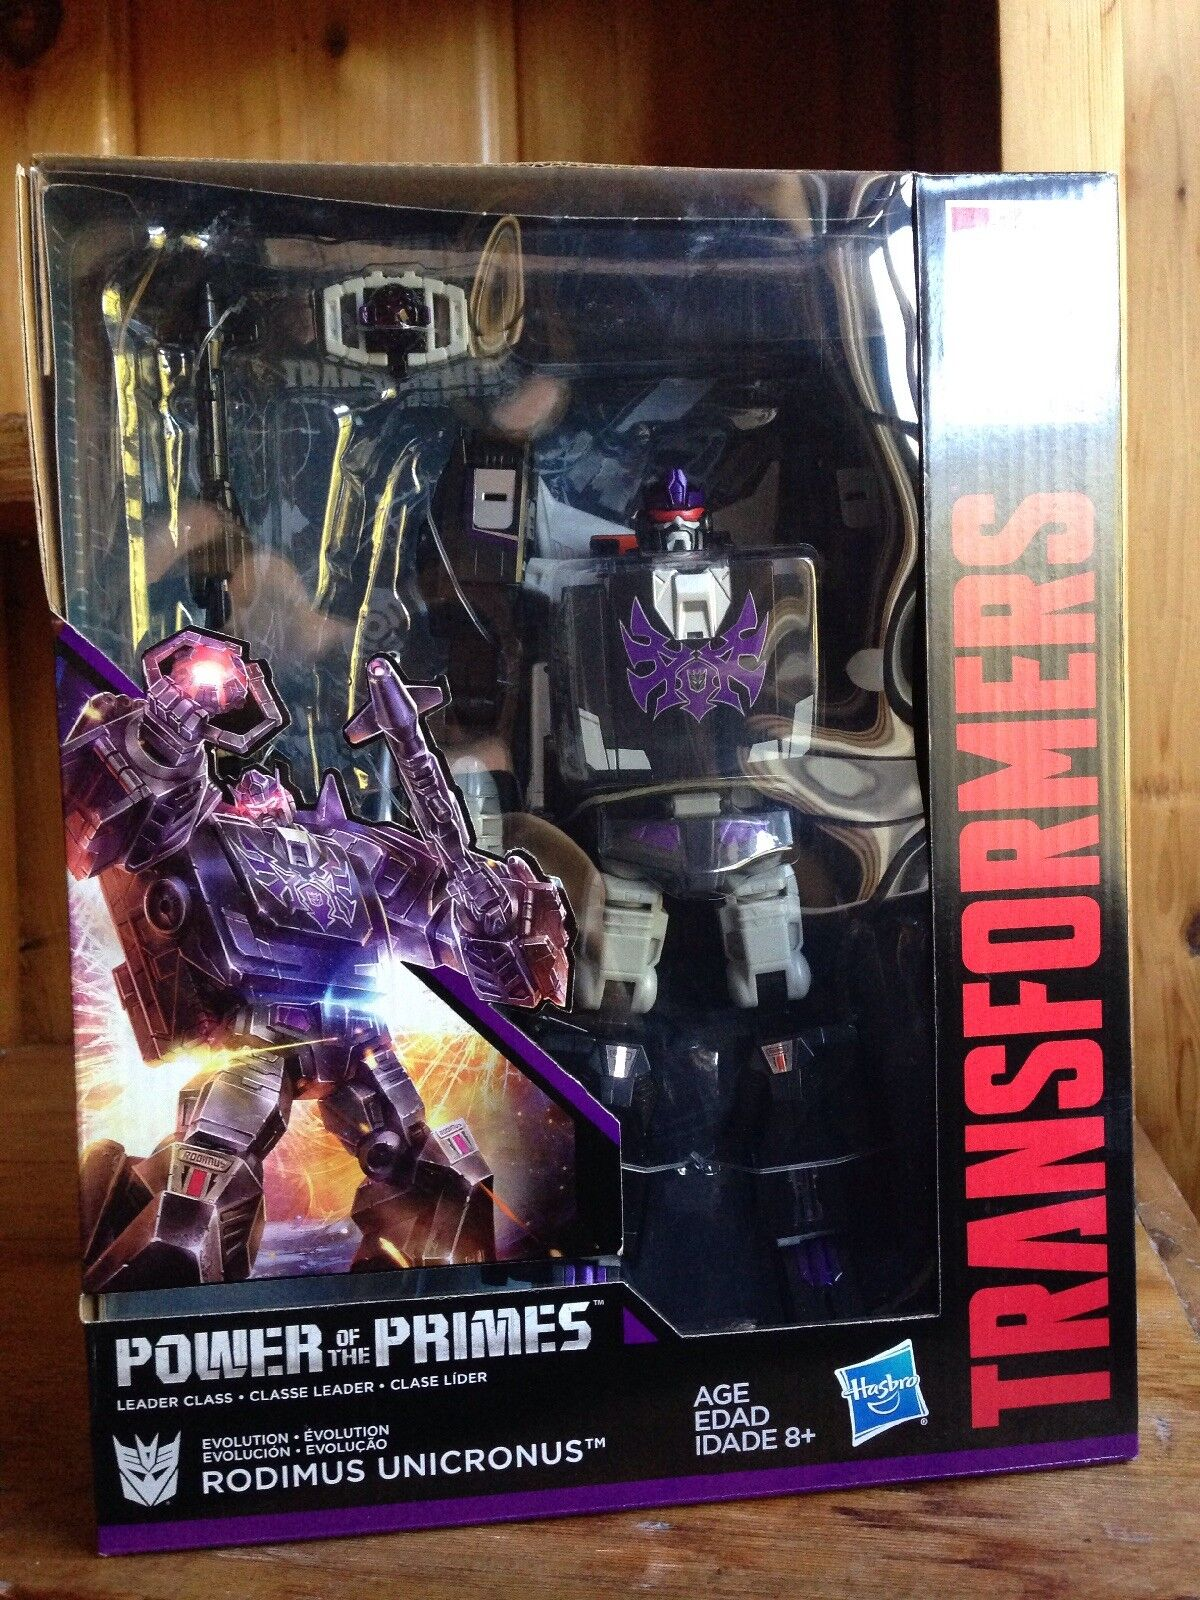 Transformers Power of the Primes POTP Unicronus Leader MISB Rodimus